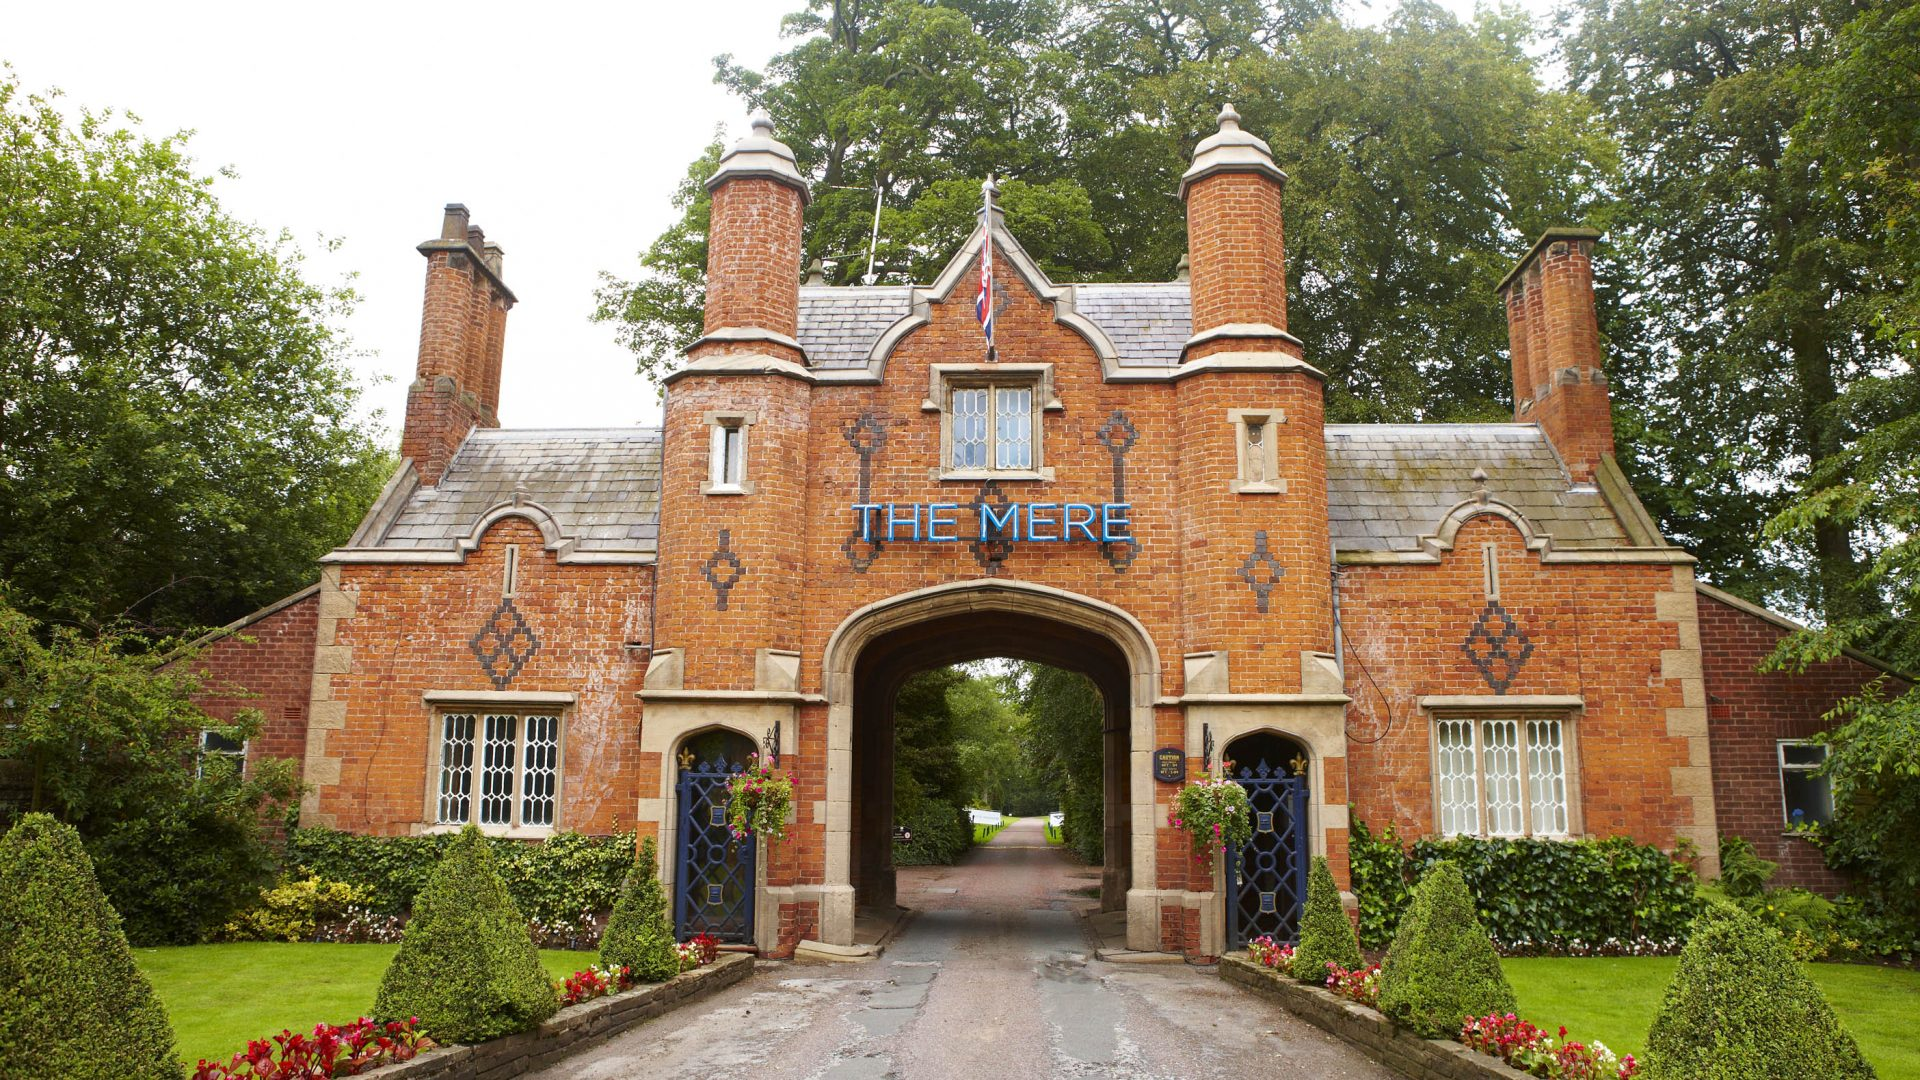 The Mere The Mere